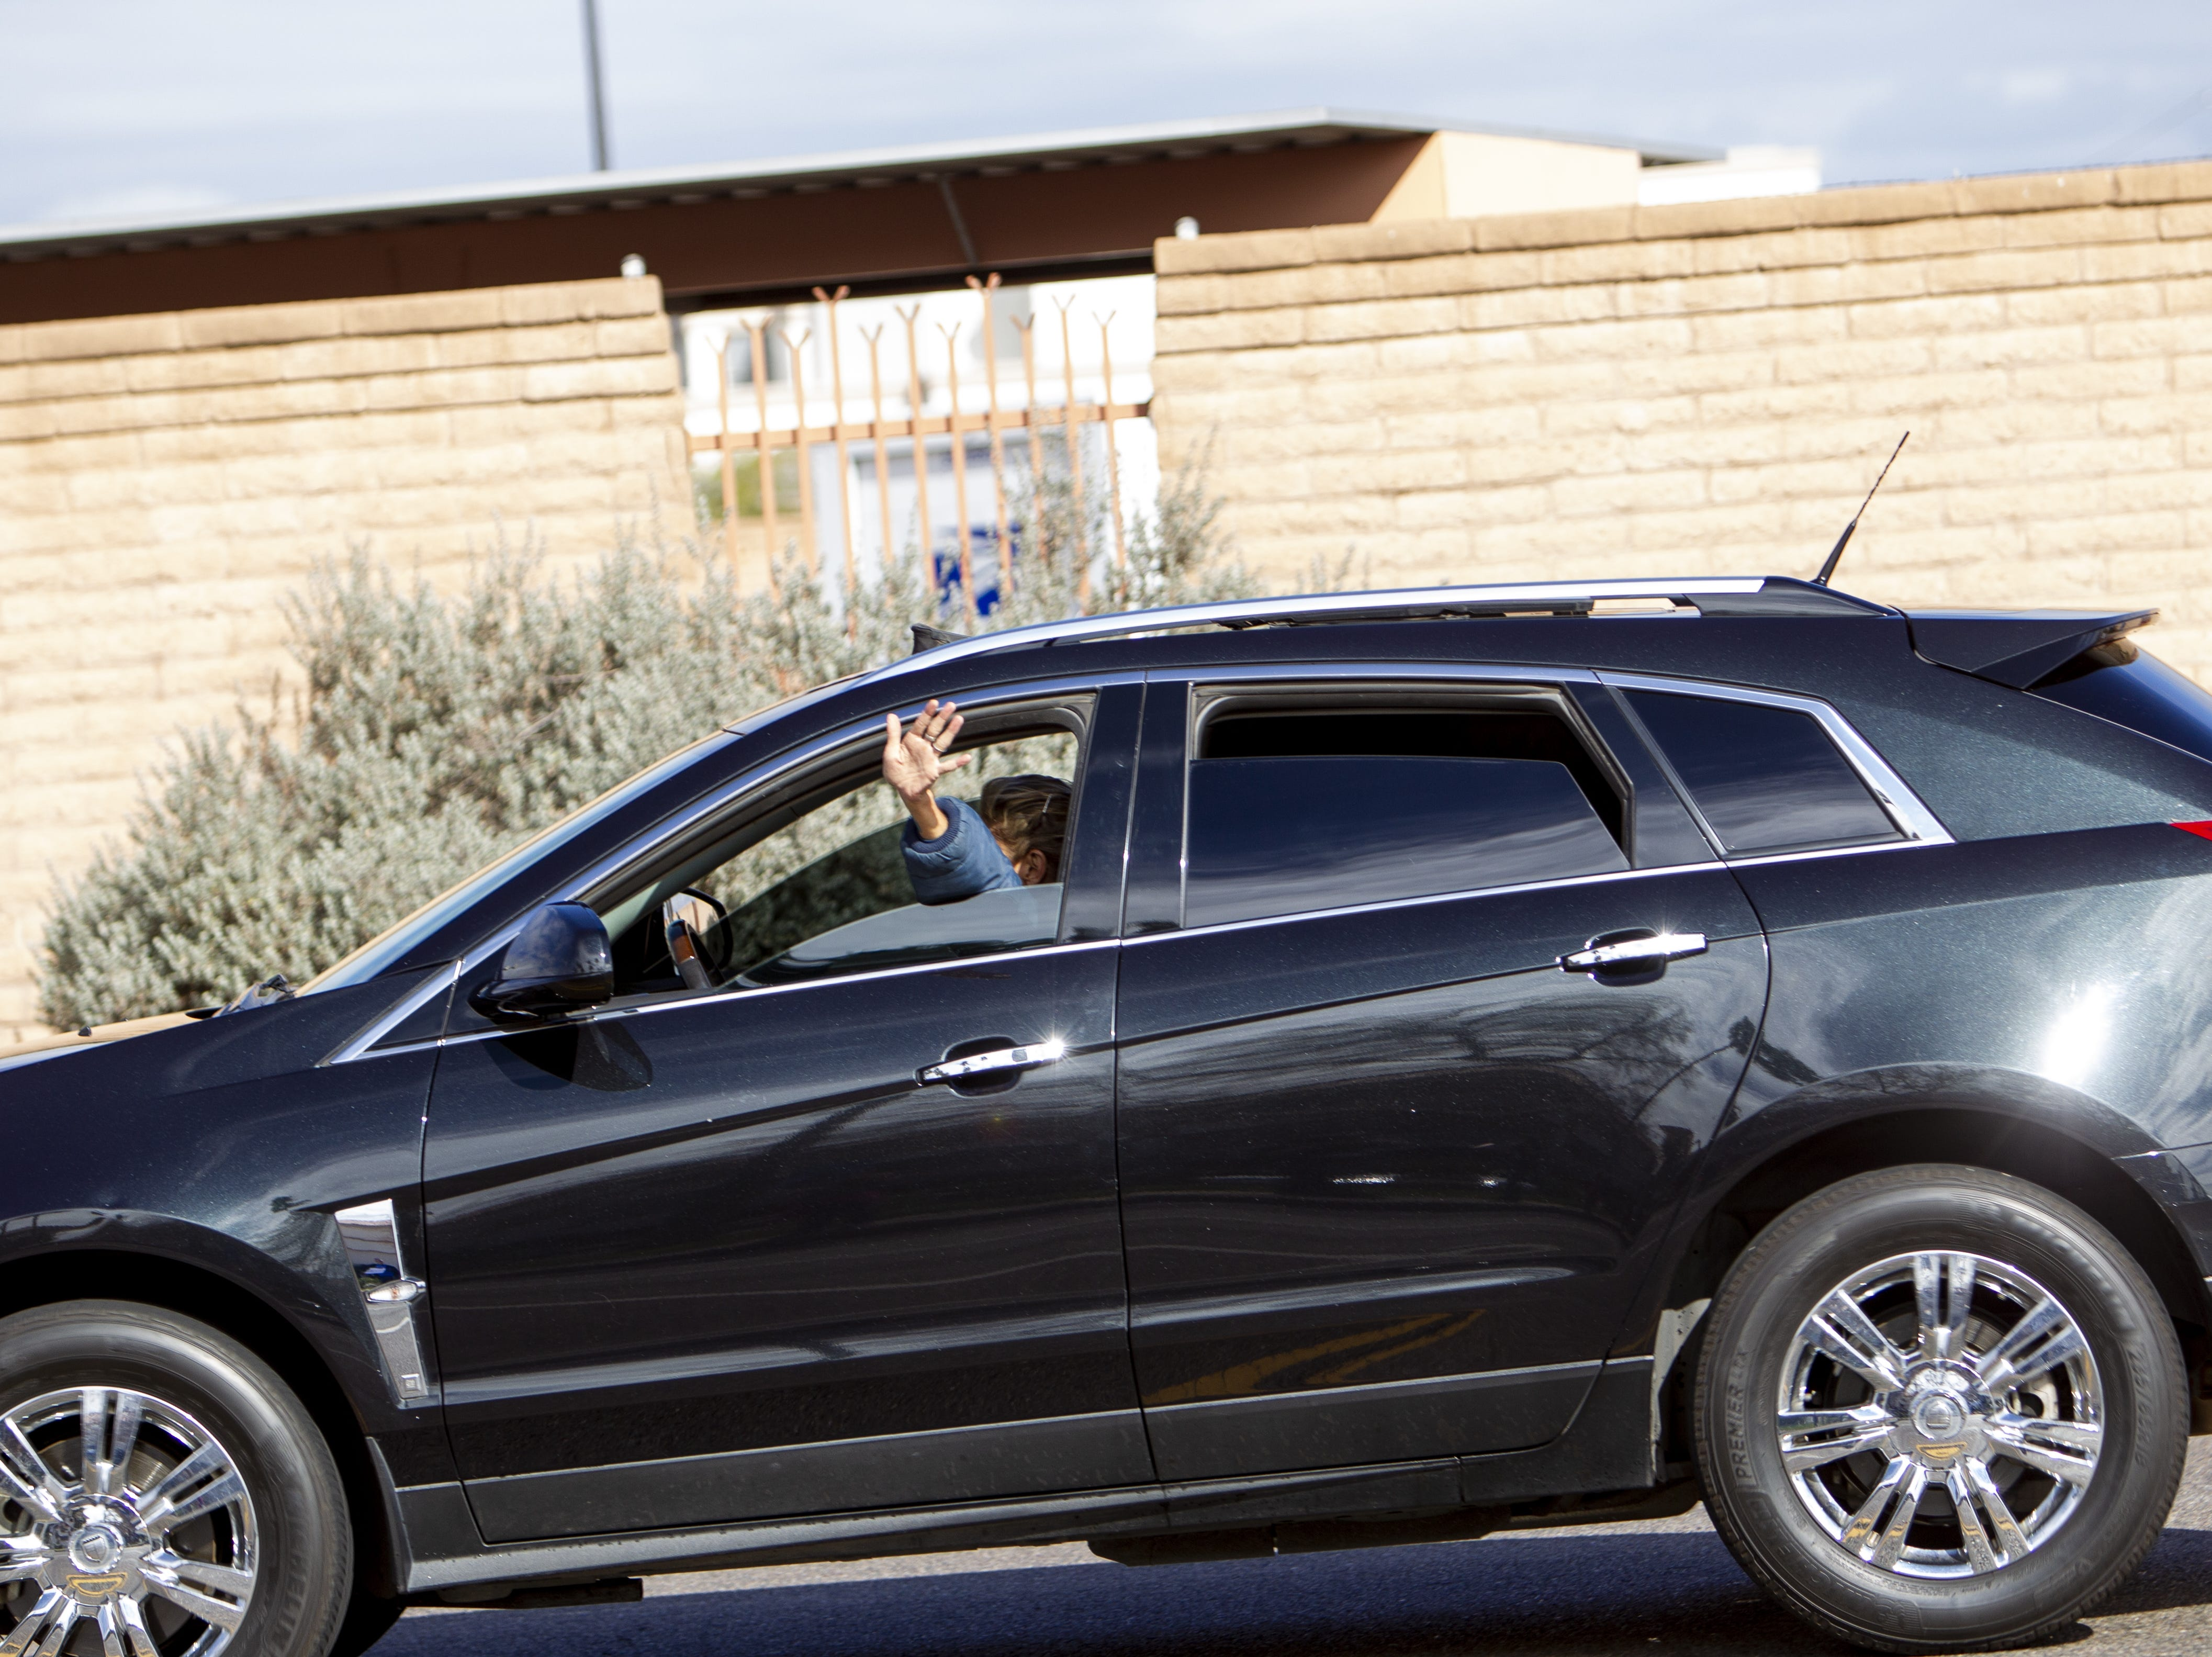 A woman driving by waves to the Dolphinaris protesters at the intersection of E. Via de Ventura and N. Pima Road in Scottsdale on Feb. 2, 2019.